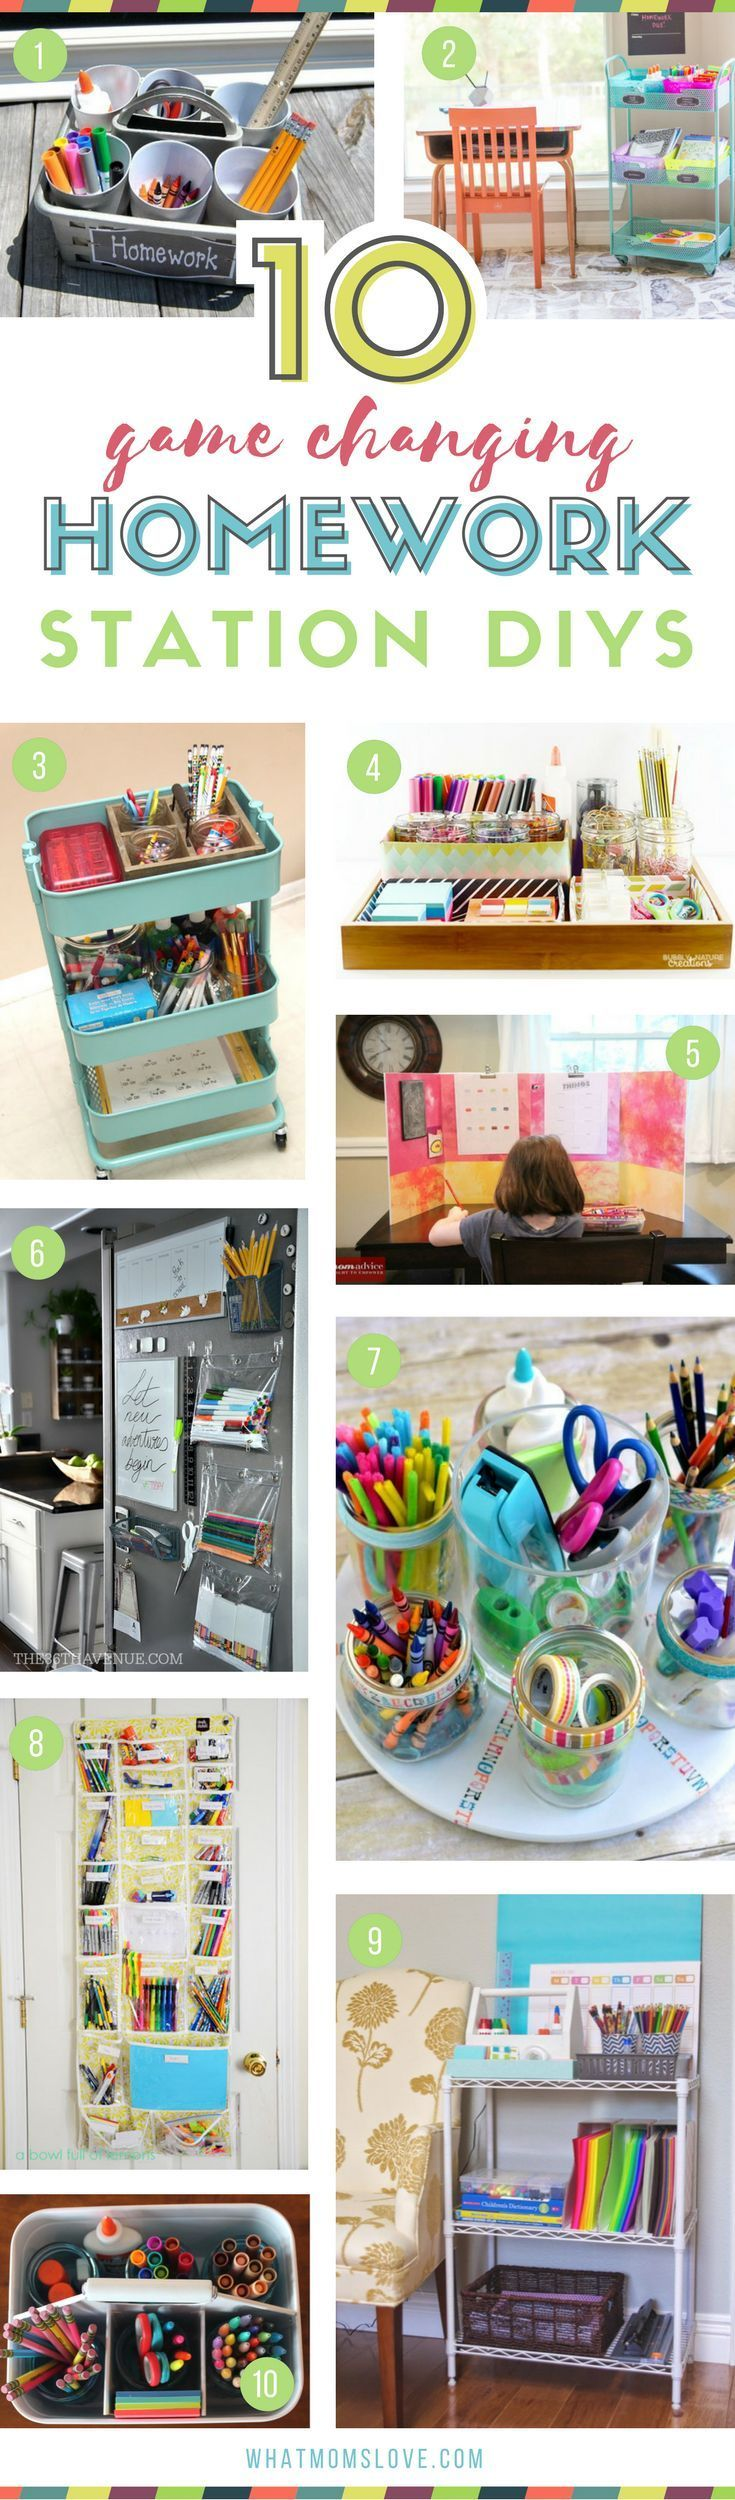 How To Create The Ultimate Homework Station So You Ll Never Have To Ask Is Your Homework Done Ever Again Kids Homework Station Homework Station Diy Bedroom Organization Diy